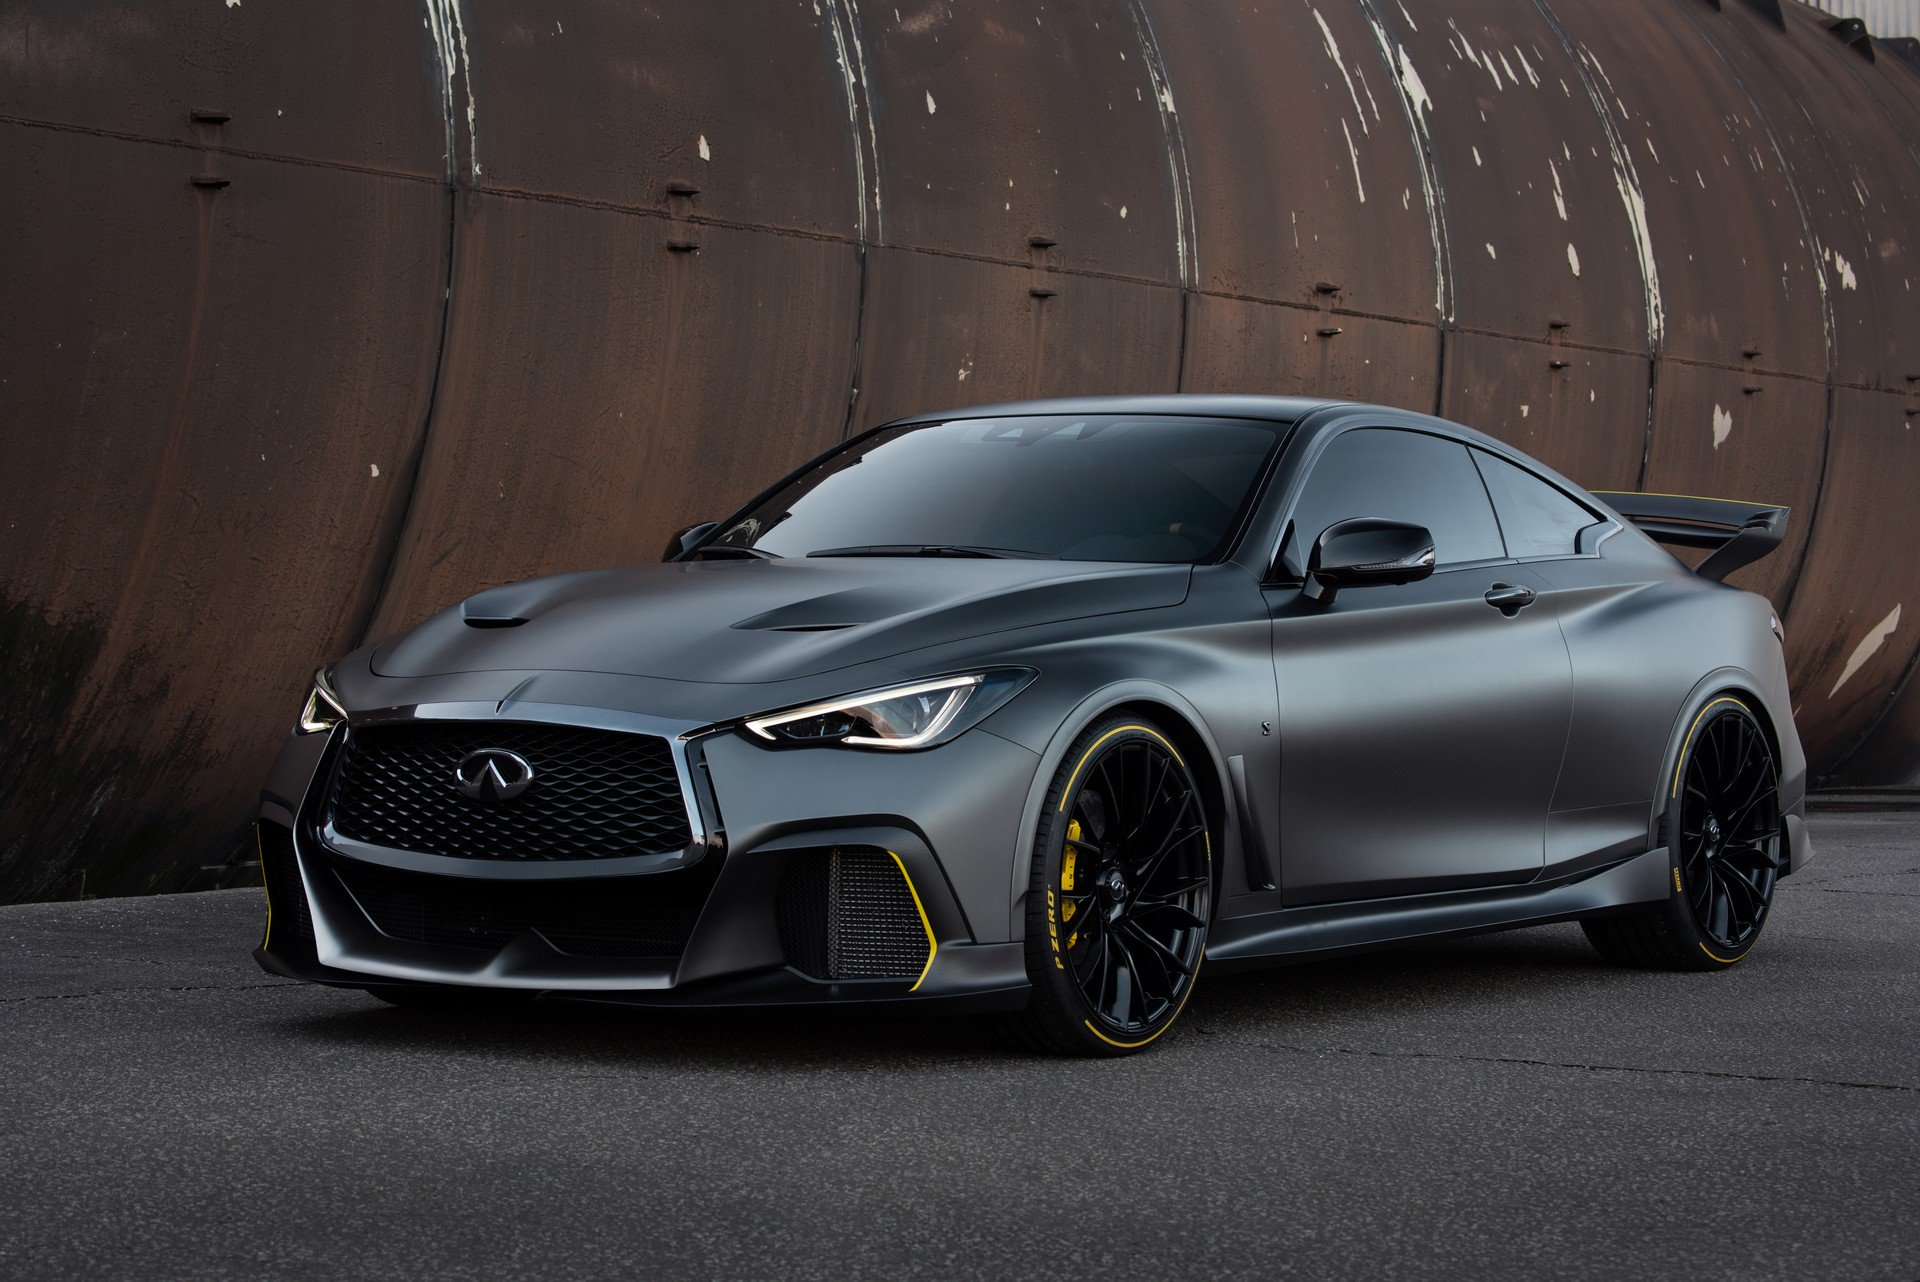 Infiniti Project Black S Prototype (12)